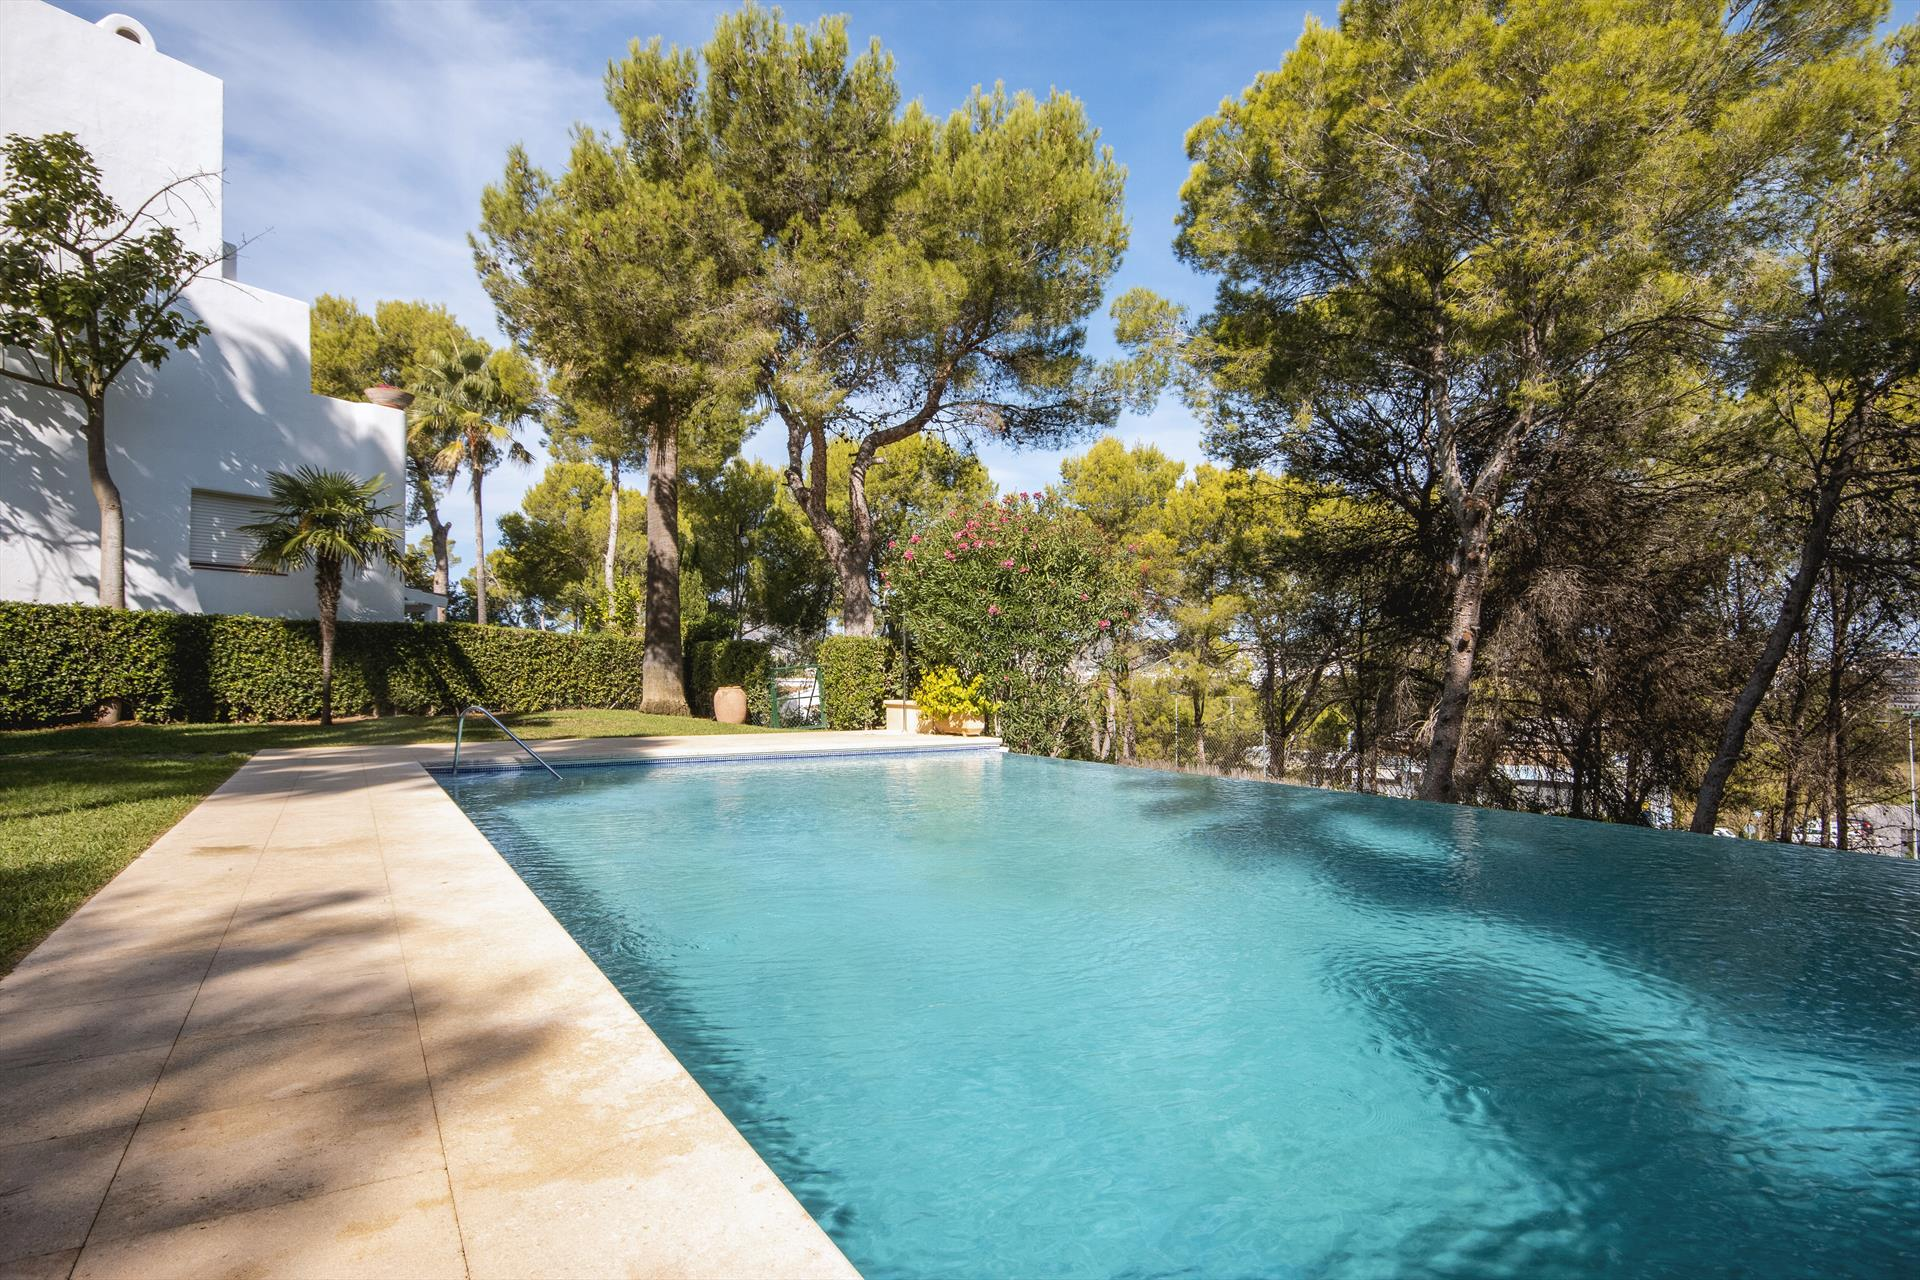 Rodat XXI 6pax,Wonderful and cheerful house  with communal pool in Javea, on the Costa Blanca, Spain for 6 persons.....